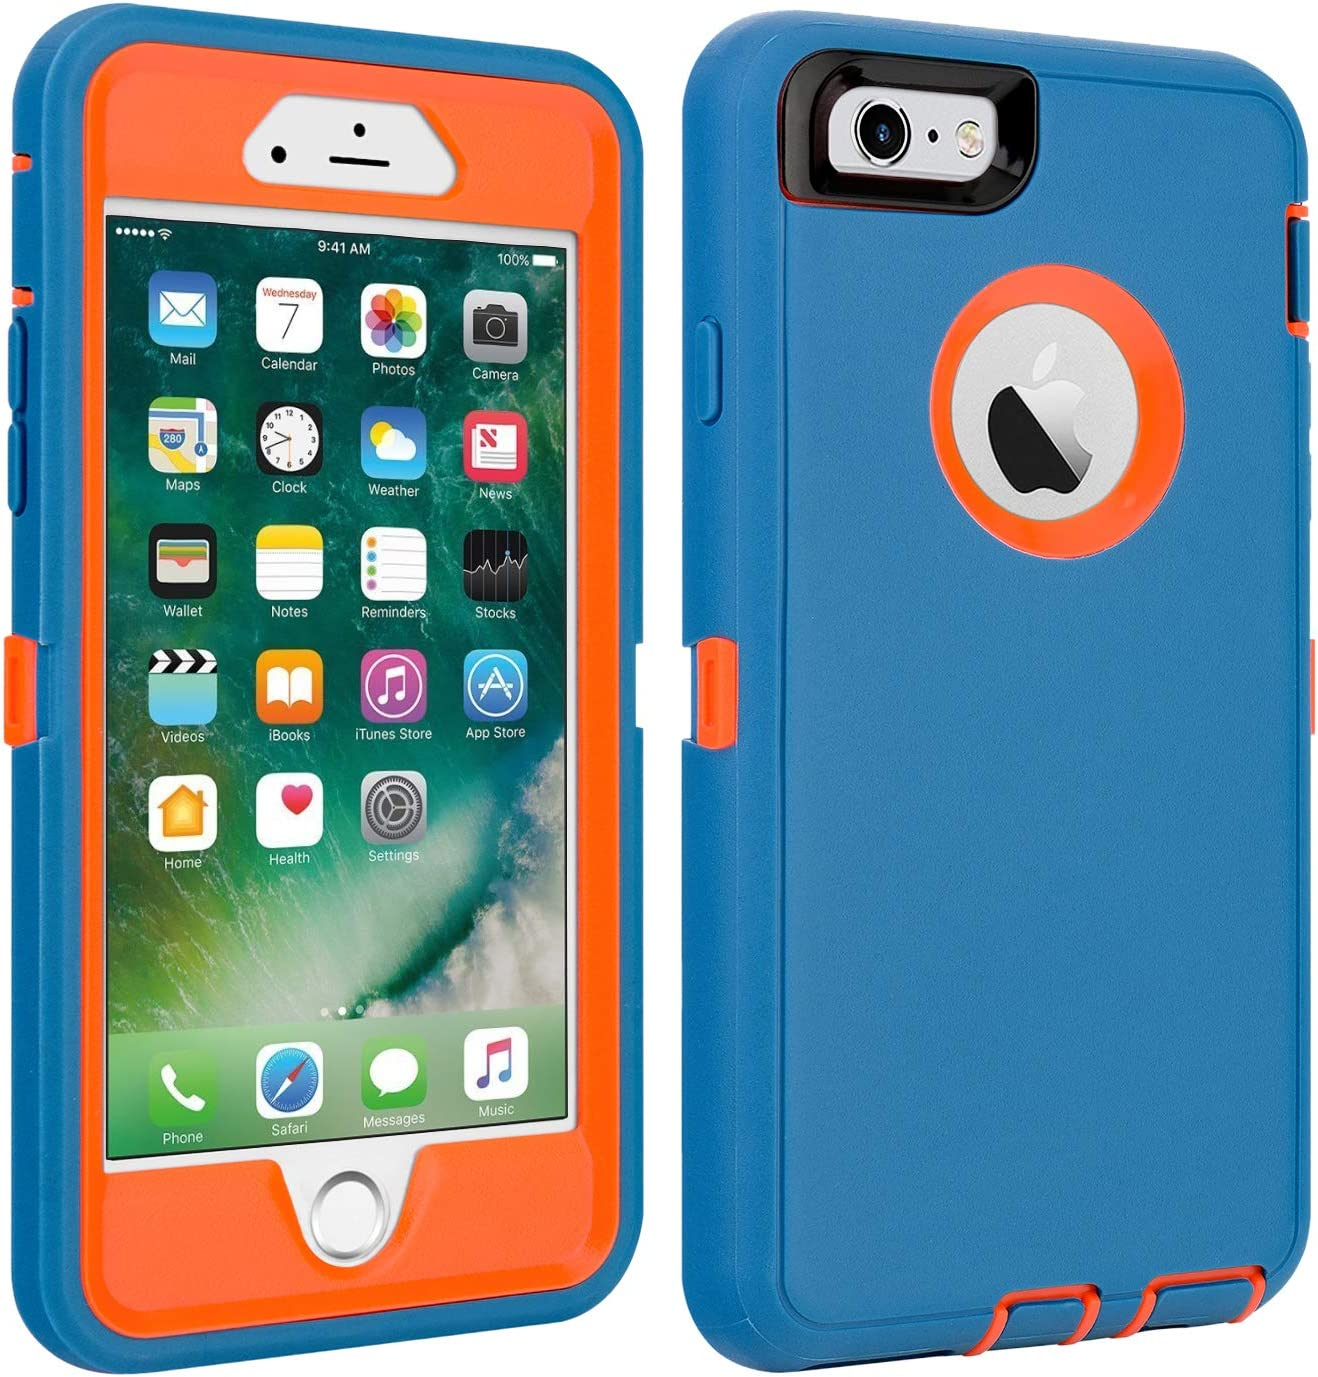 "iPhone 6/6S Case Shockproof High Impact Tough Rubber Rugged Hybrid Case Silicone Triple Protective Anti-Shock Shatter-Resistant Mobile Phone Case for iPhone 6/6S 4.7""(Blue-Orange)"